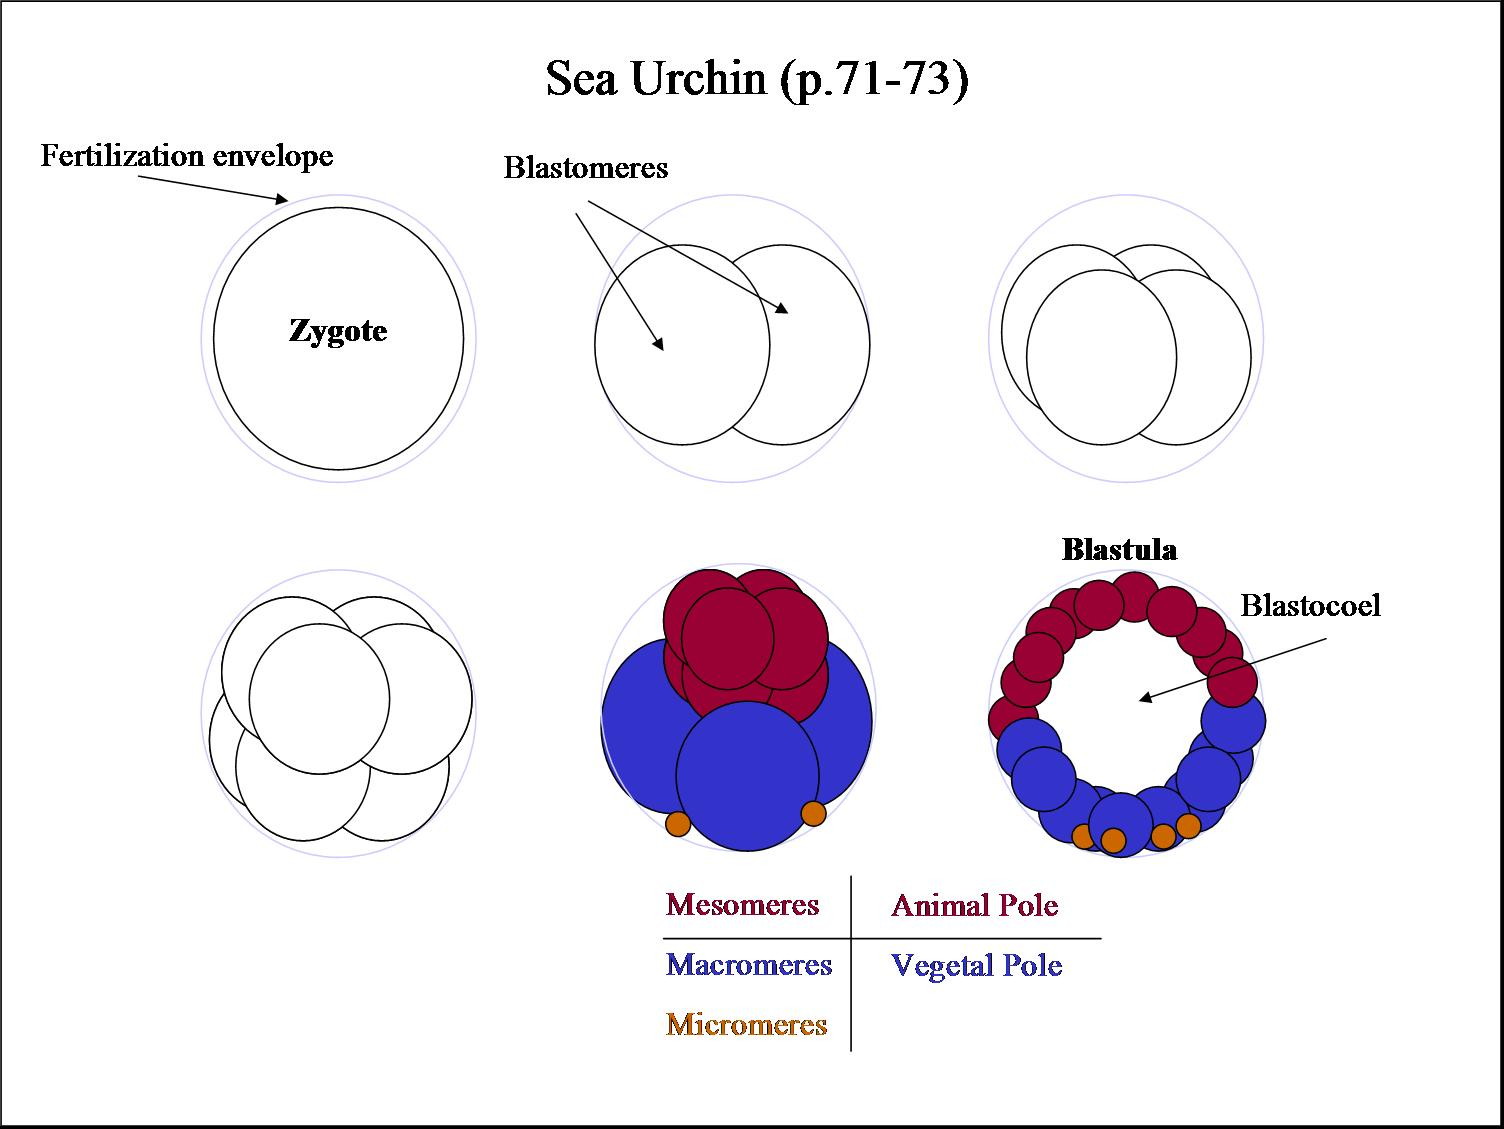 104 spring 2006 sea urchin embryology diagram microlecithal pooptronica Image collections